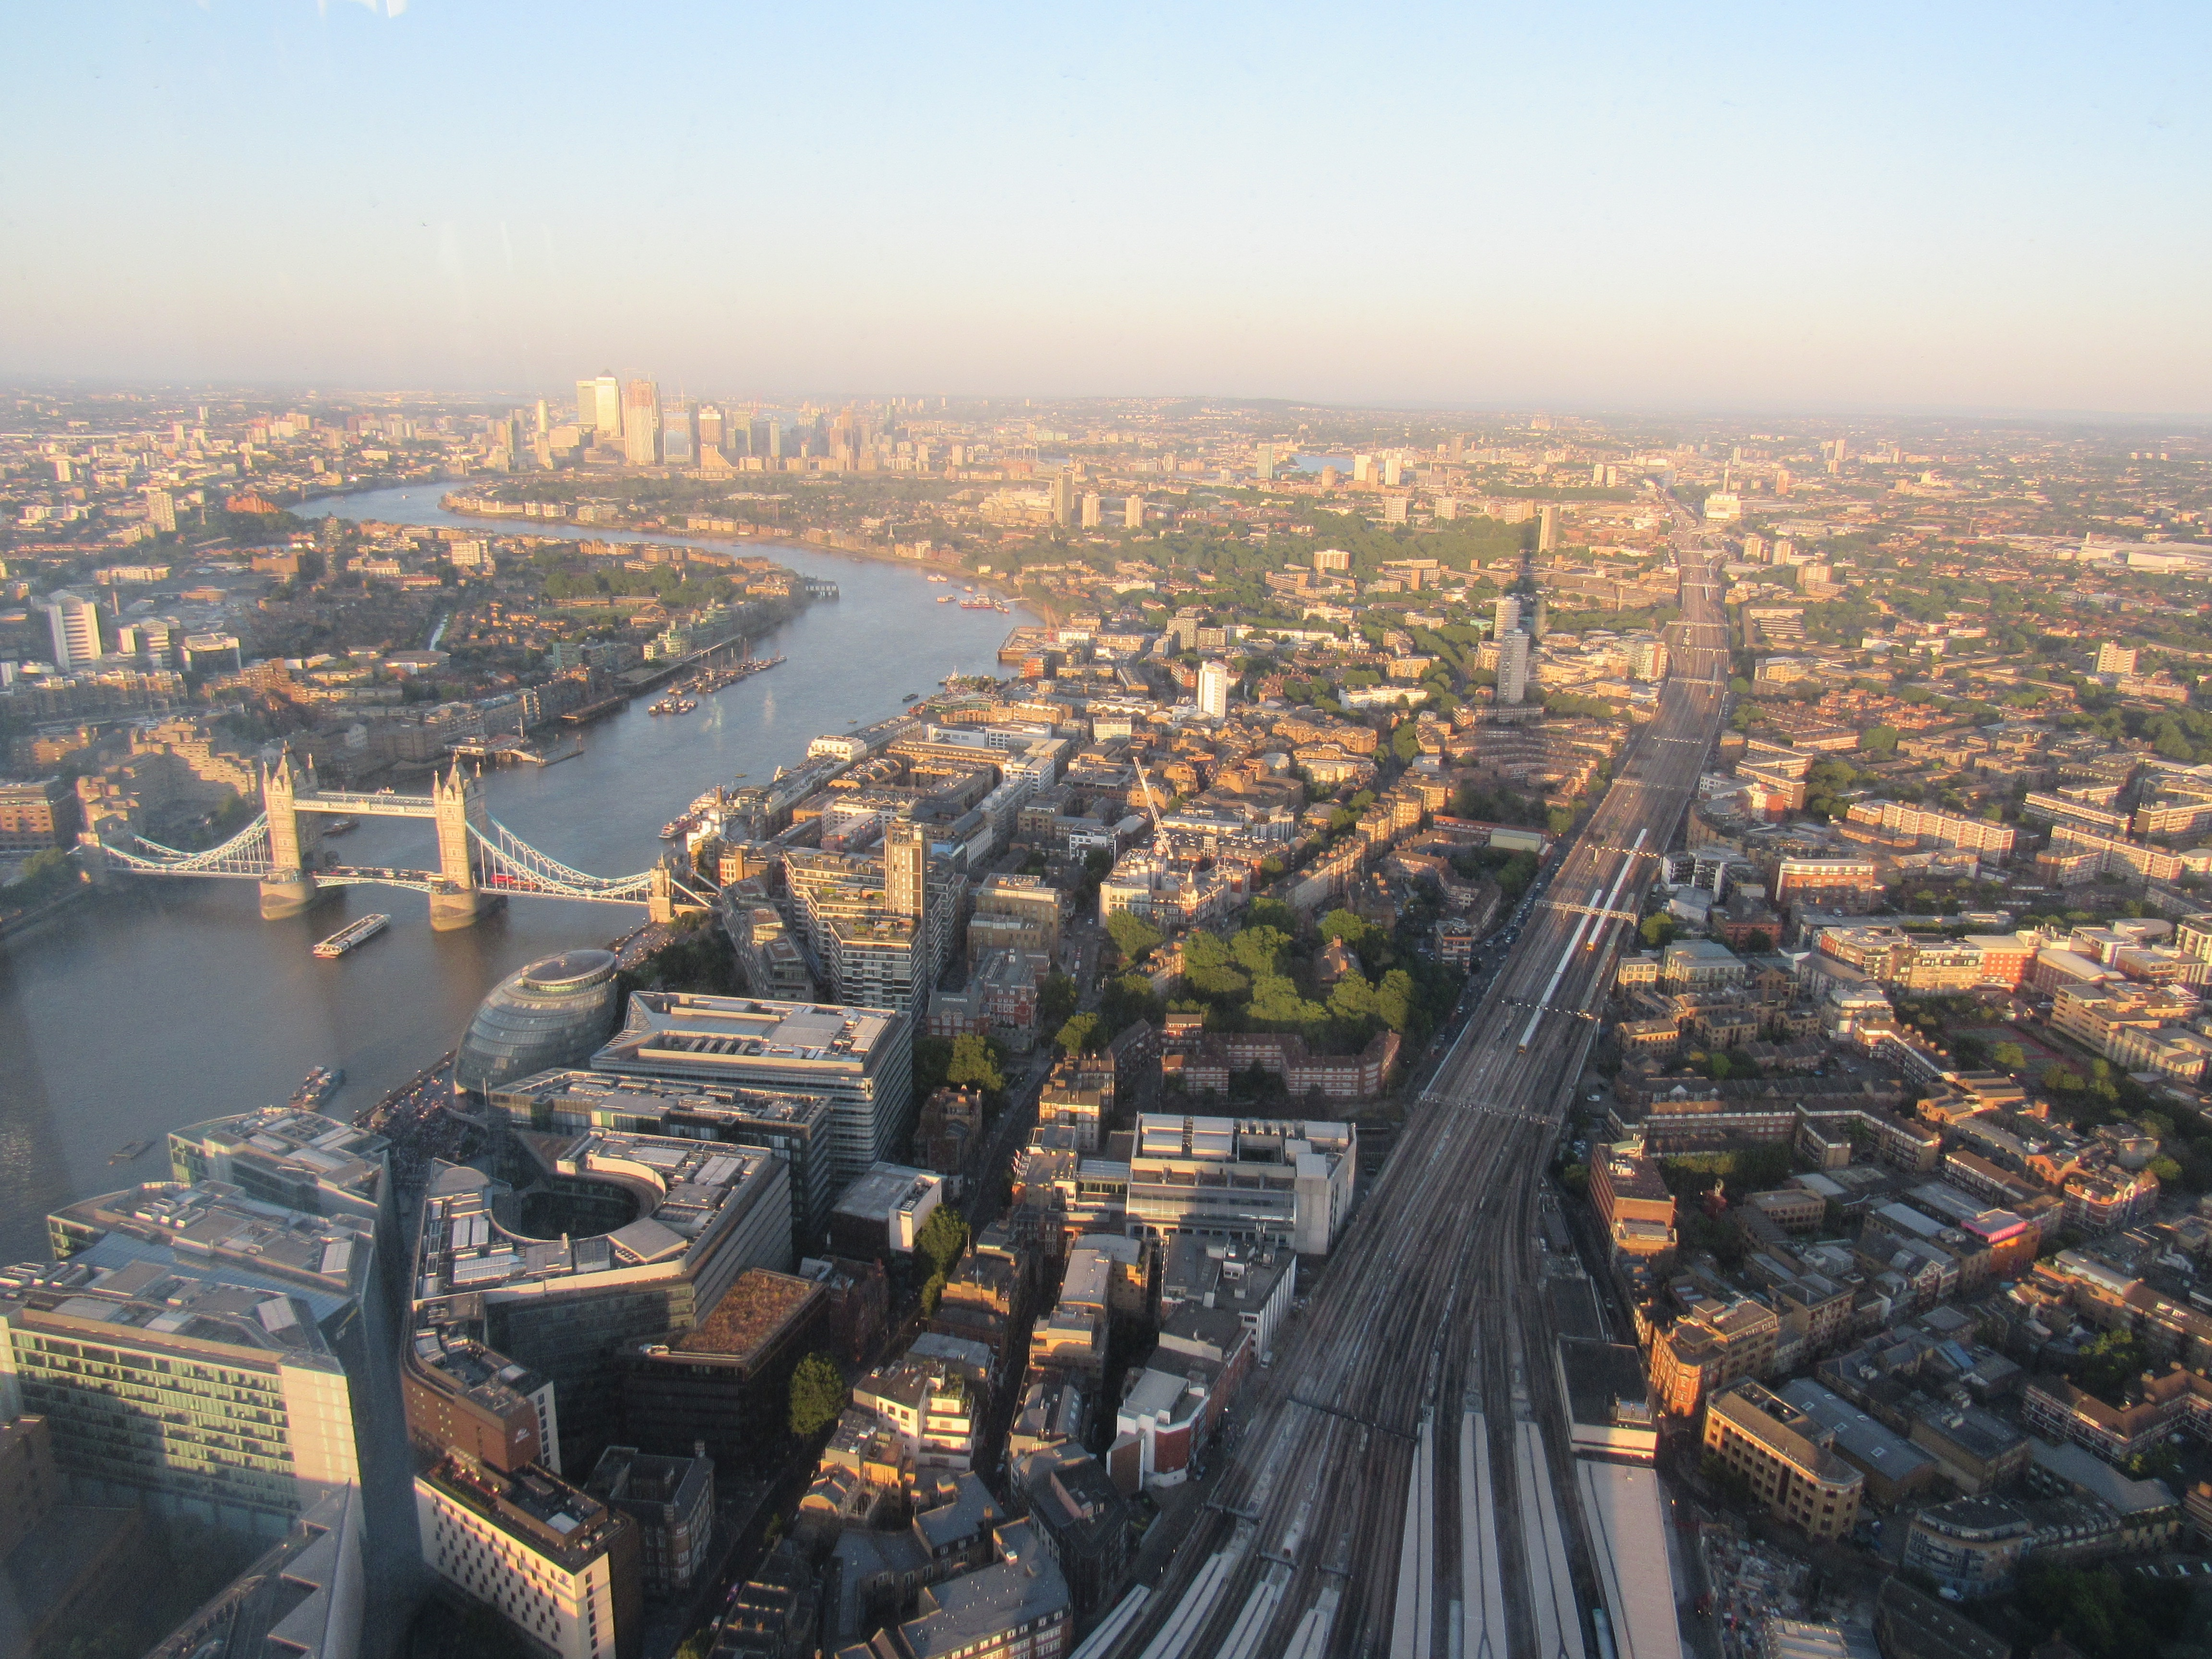 CAPAStudyAbroad_London_Summer2018_From Alice Ding - A View of London from The Shard